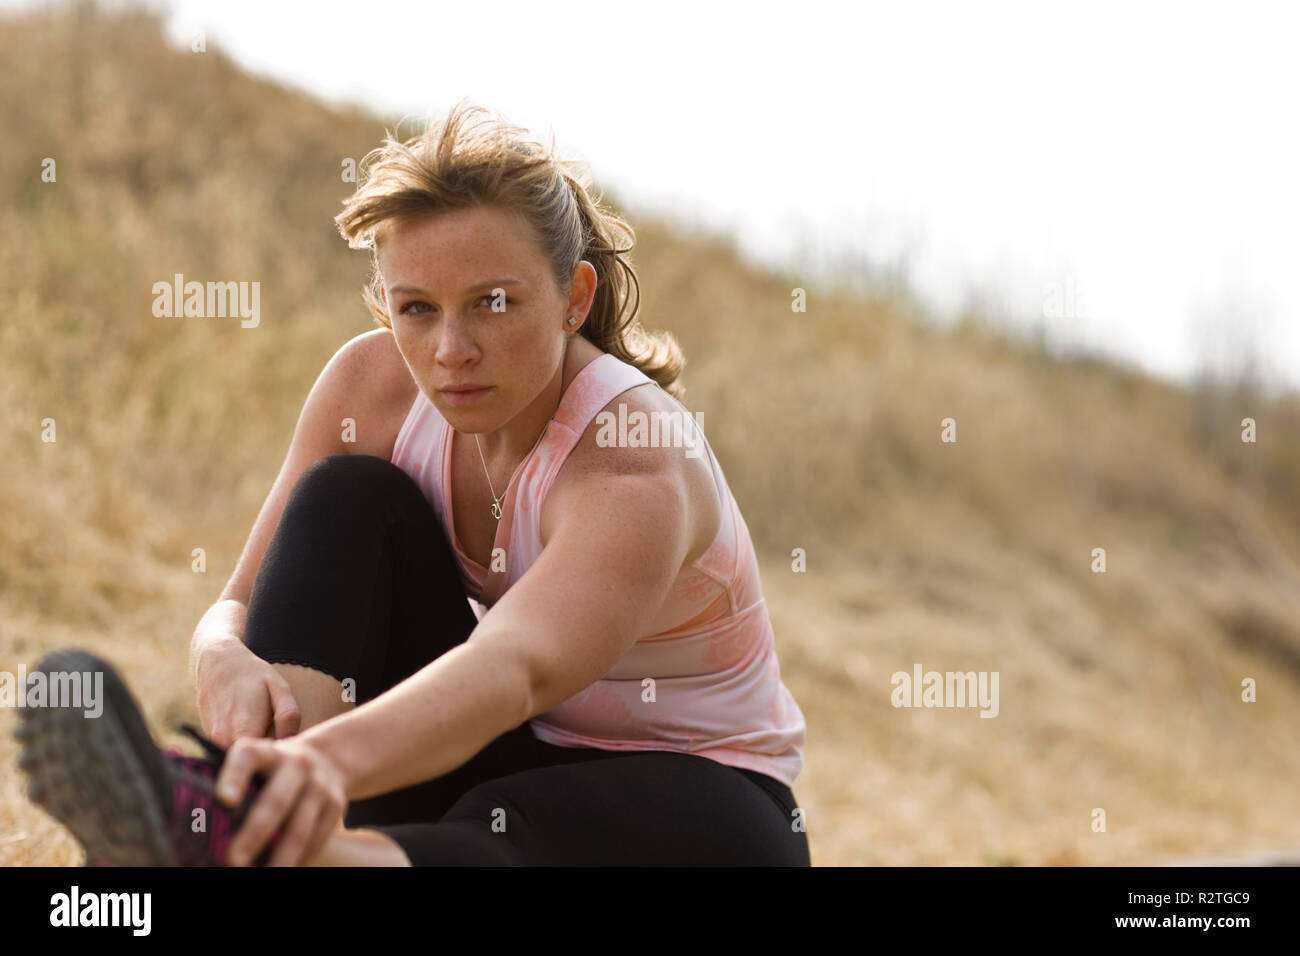 Portrait of a teenage girl sitting stretching while in a field. Stock Photo